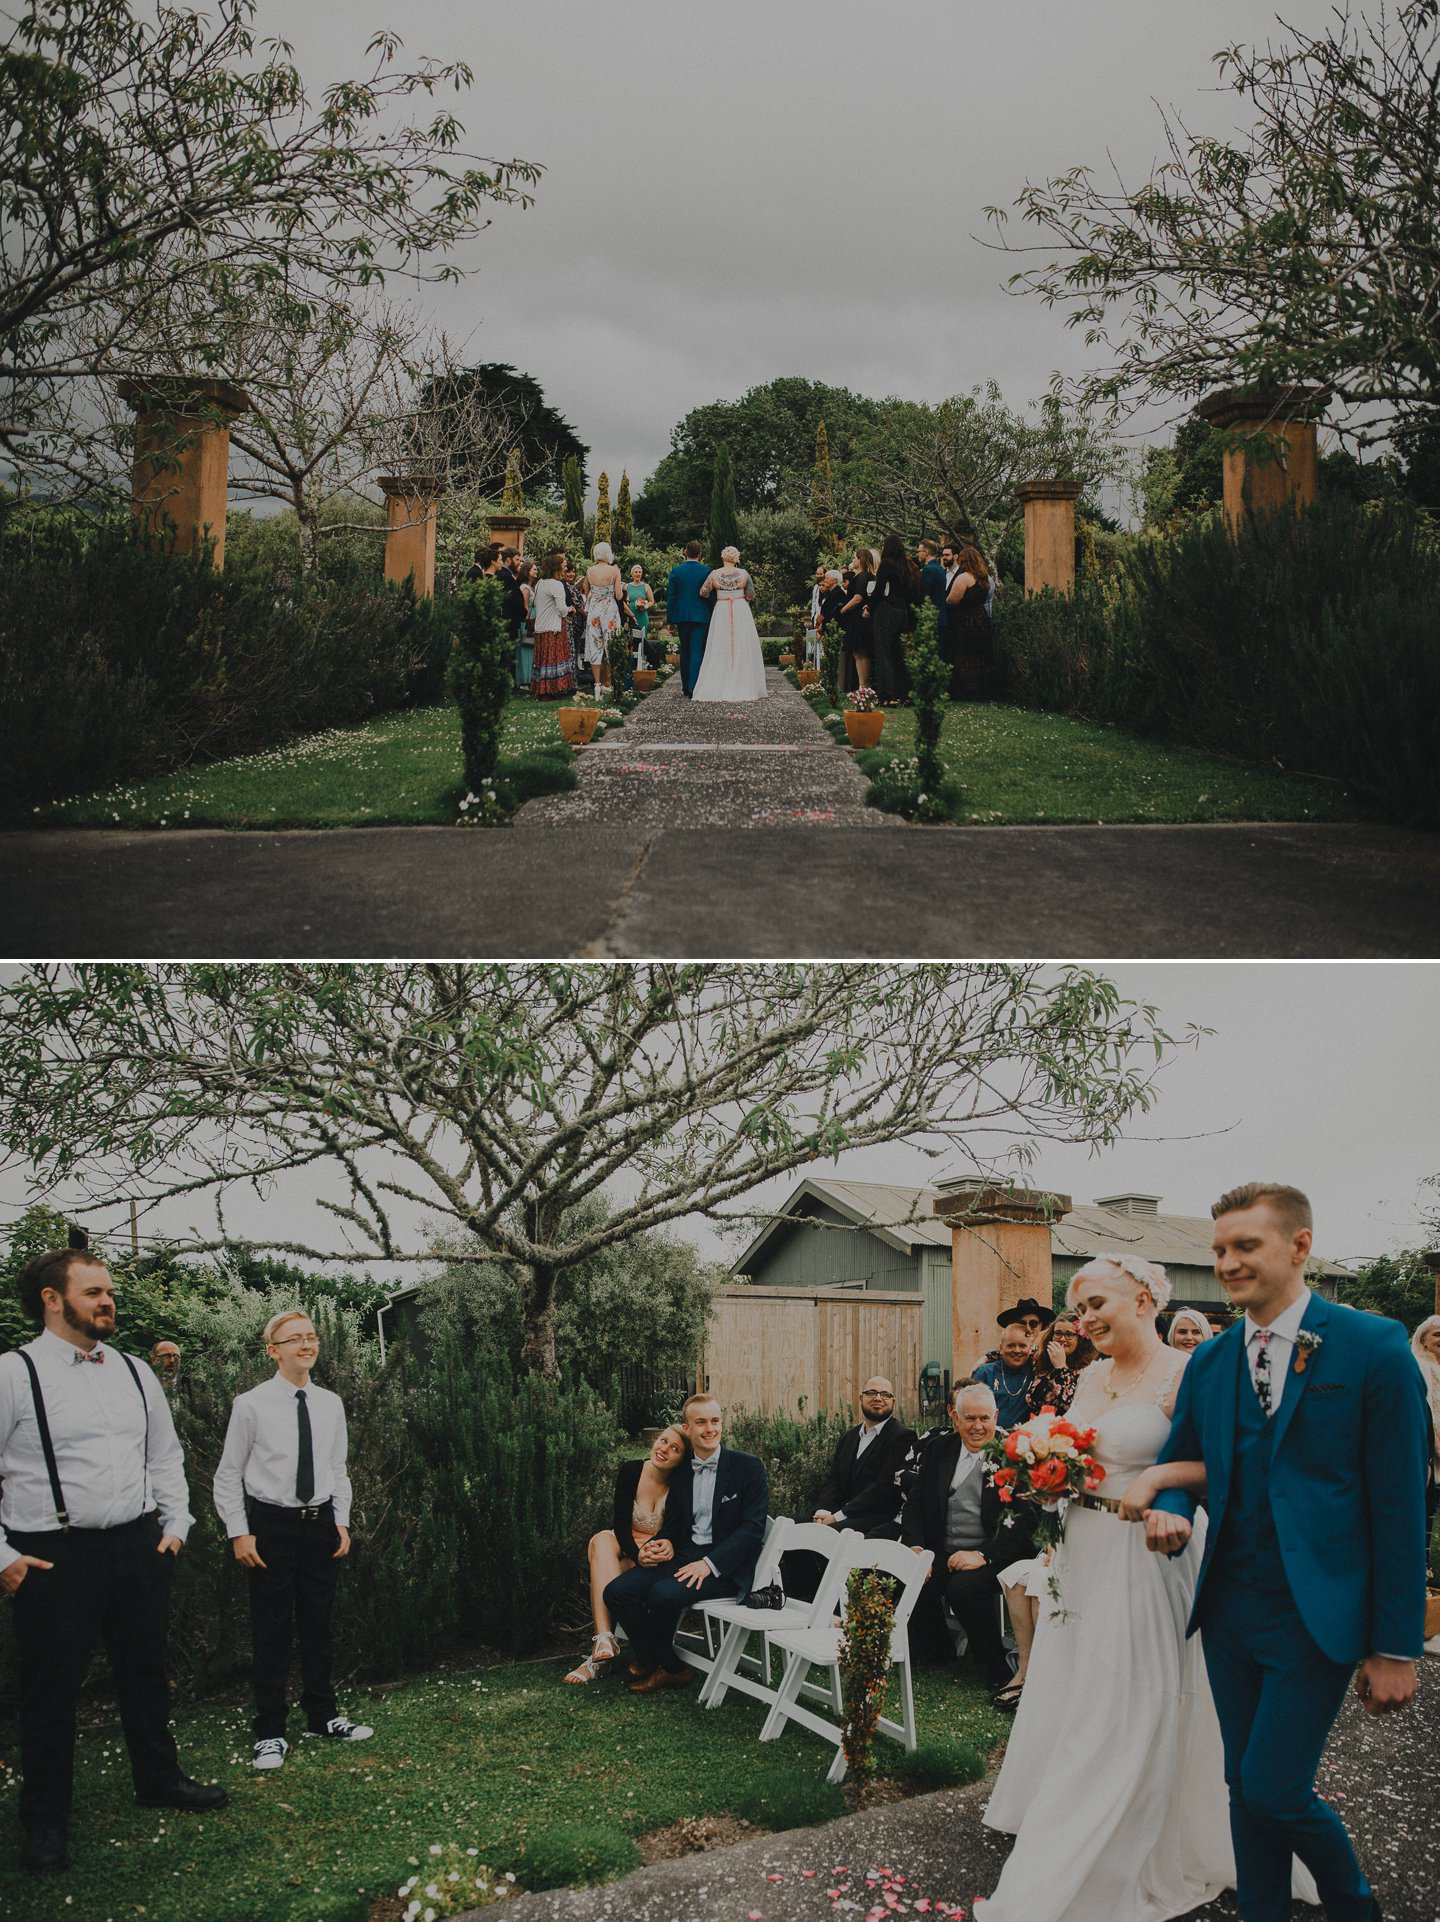 Alternative wedding ideas. Bride and groom walking down the aisle together